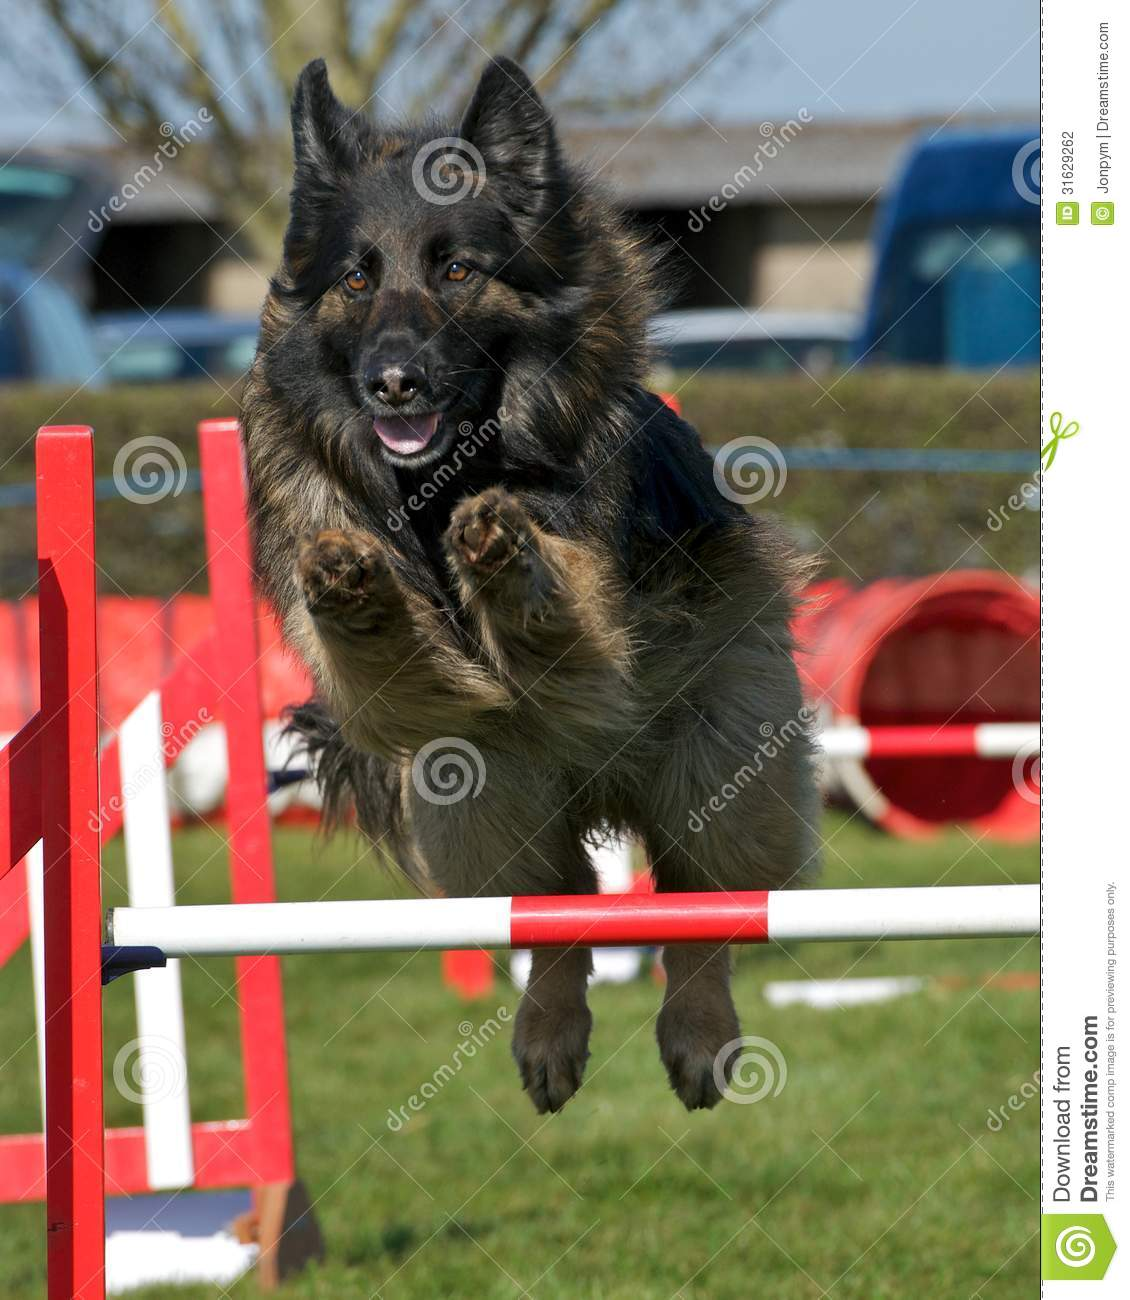 Rugby Dog Agility Show: Dog Agility Stock Photo. Image Of Clear, Cute, Doggy